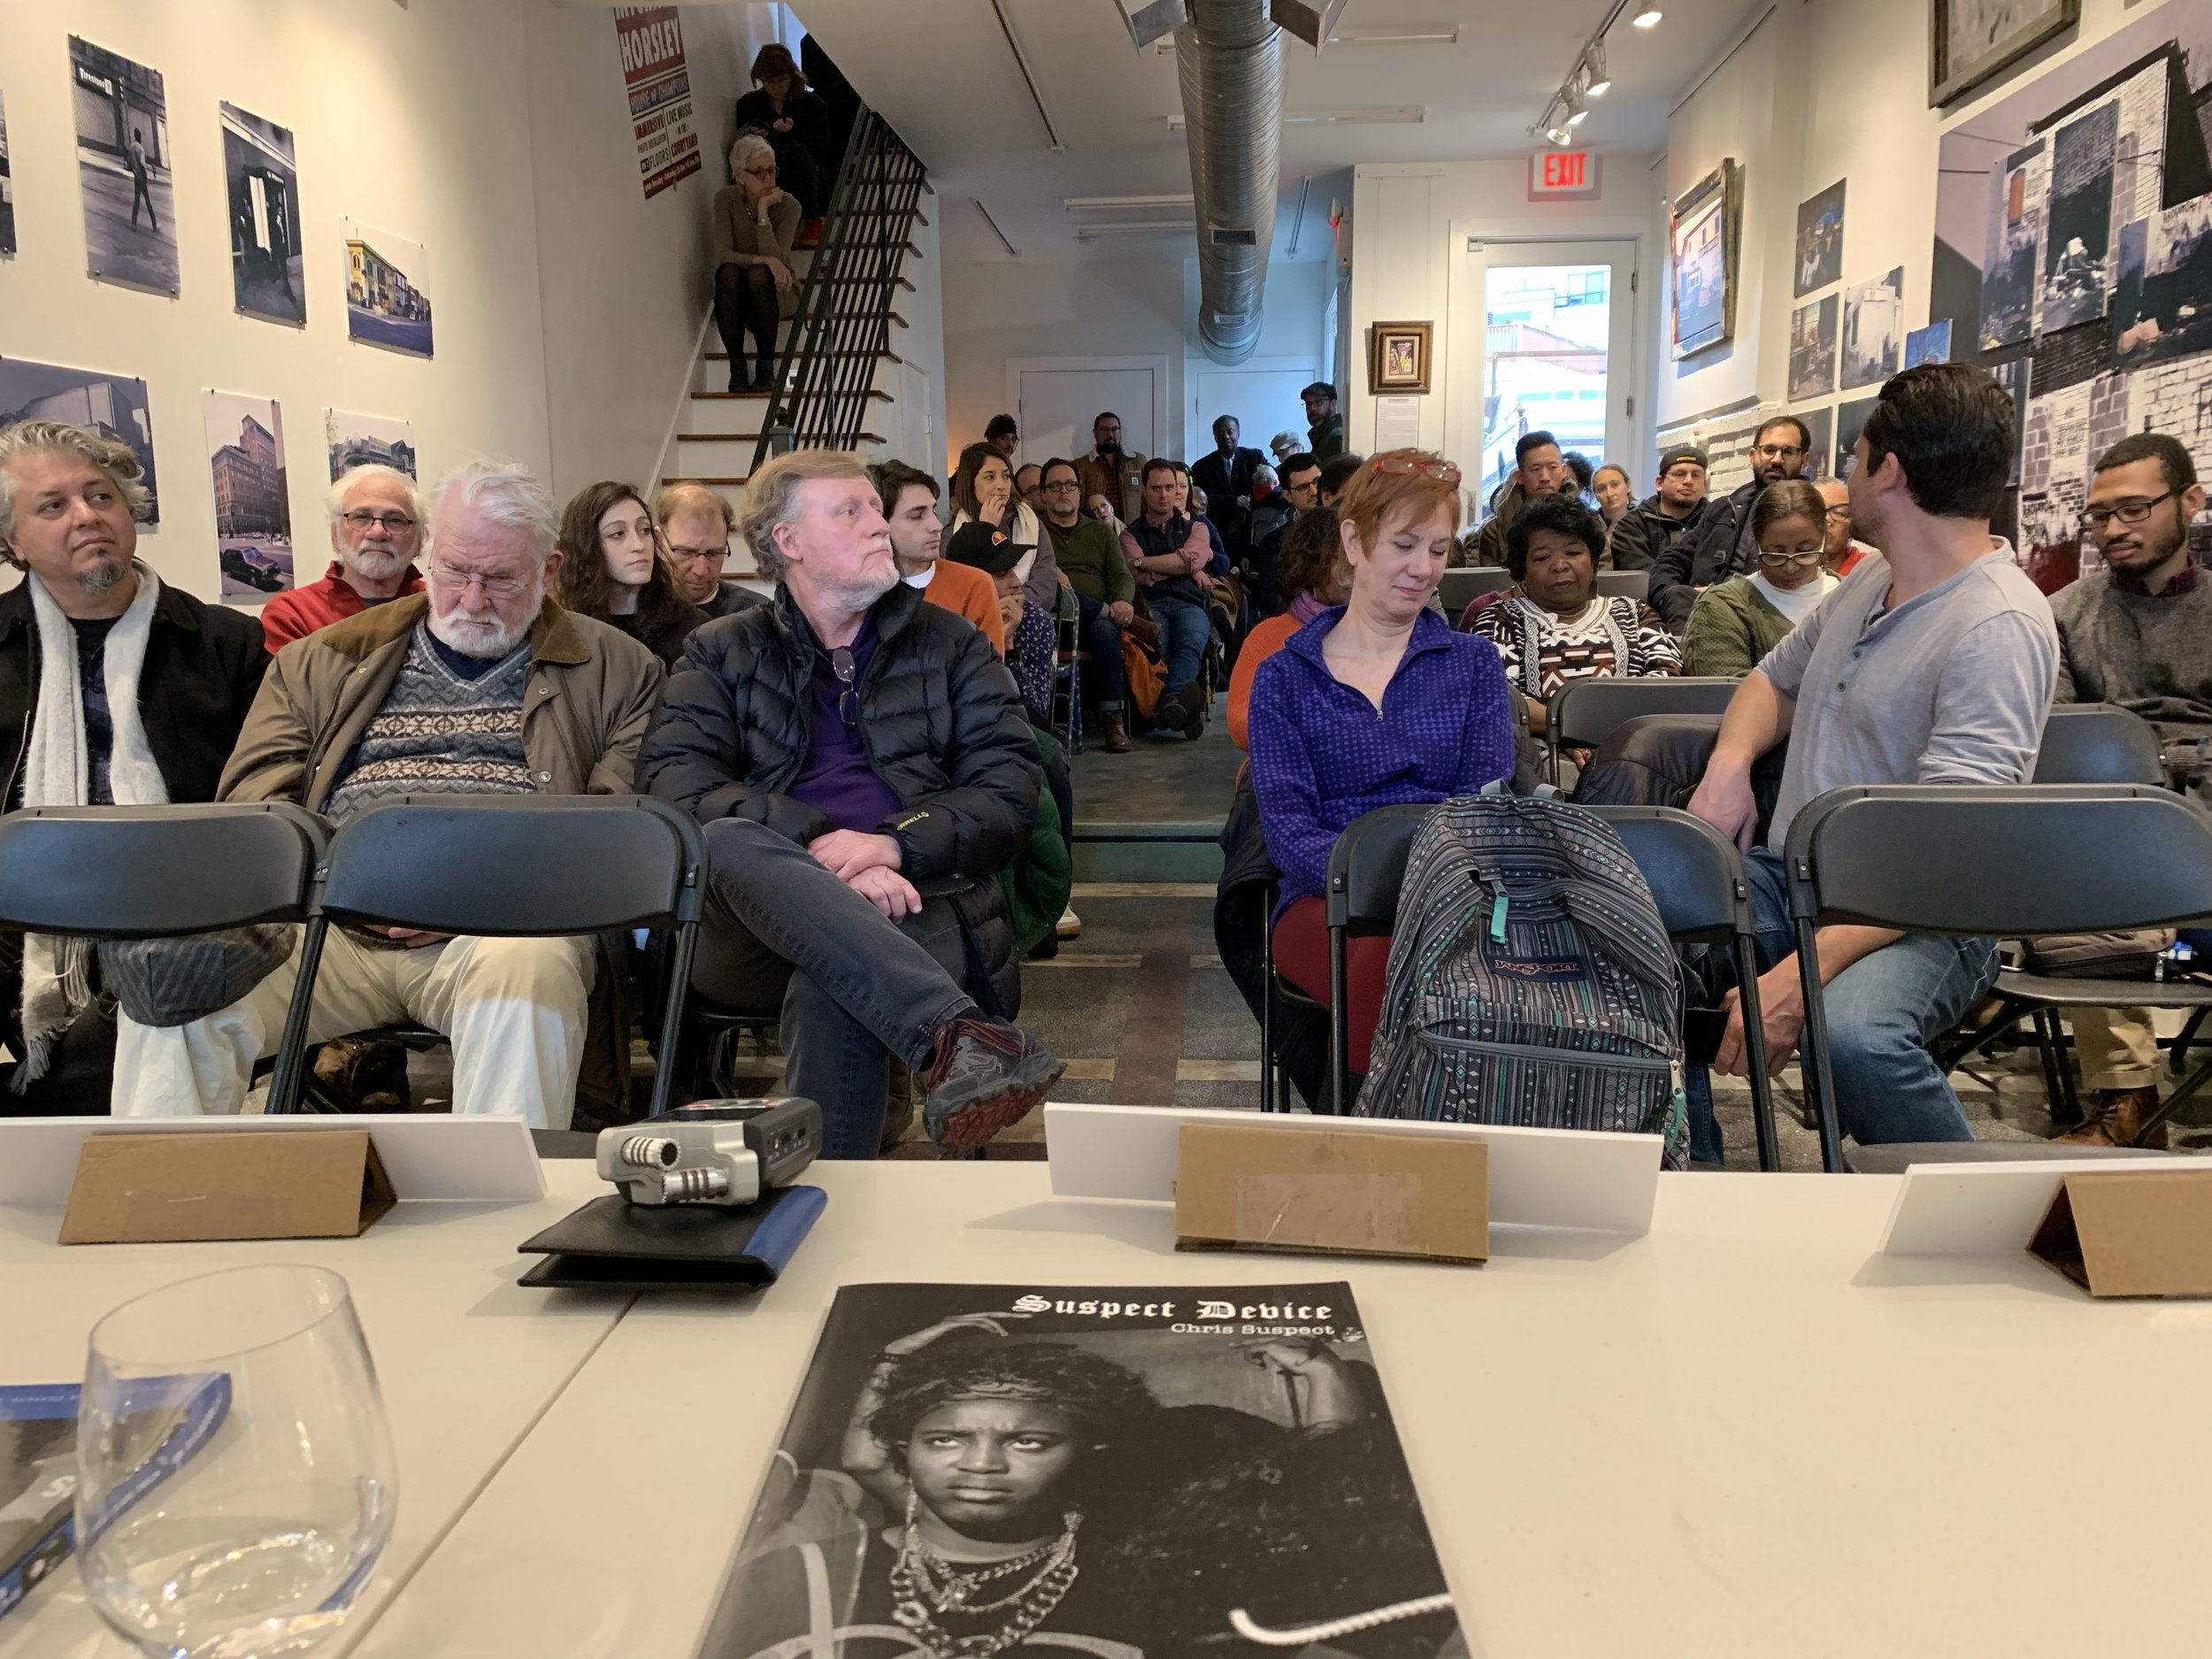 Audience at Gallery O on H, January 26, 2019 | © 2019 Chris Suspect